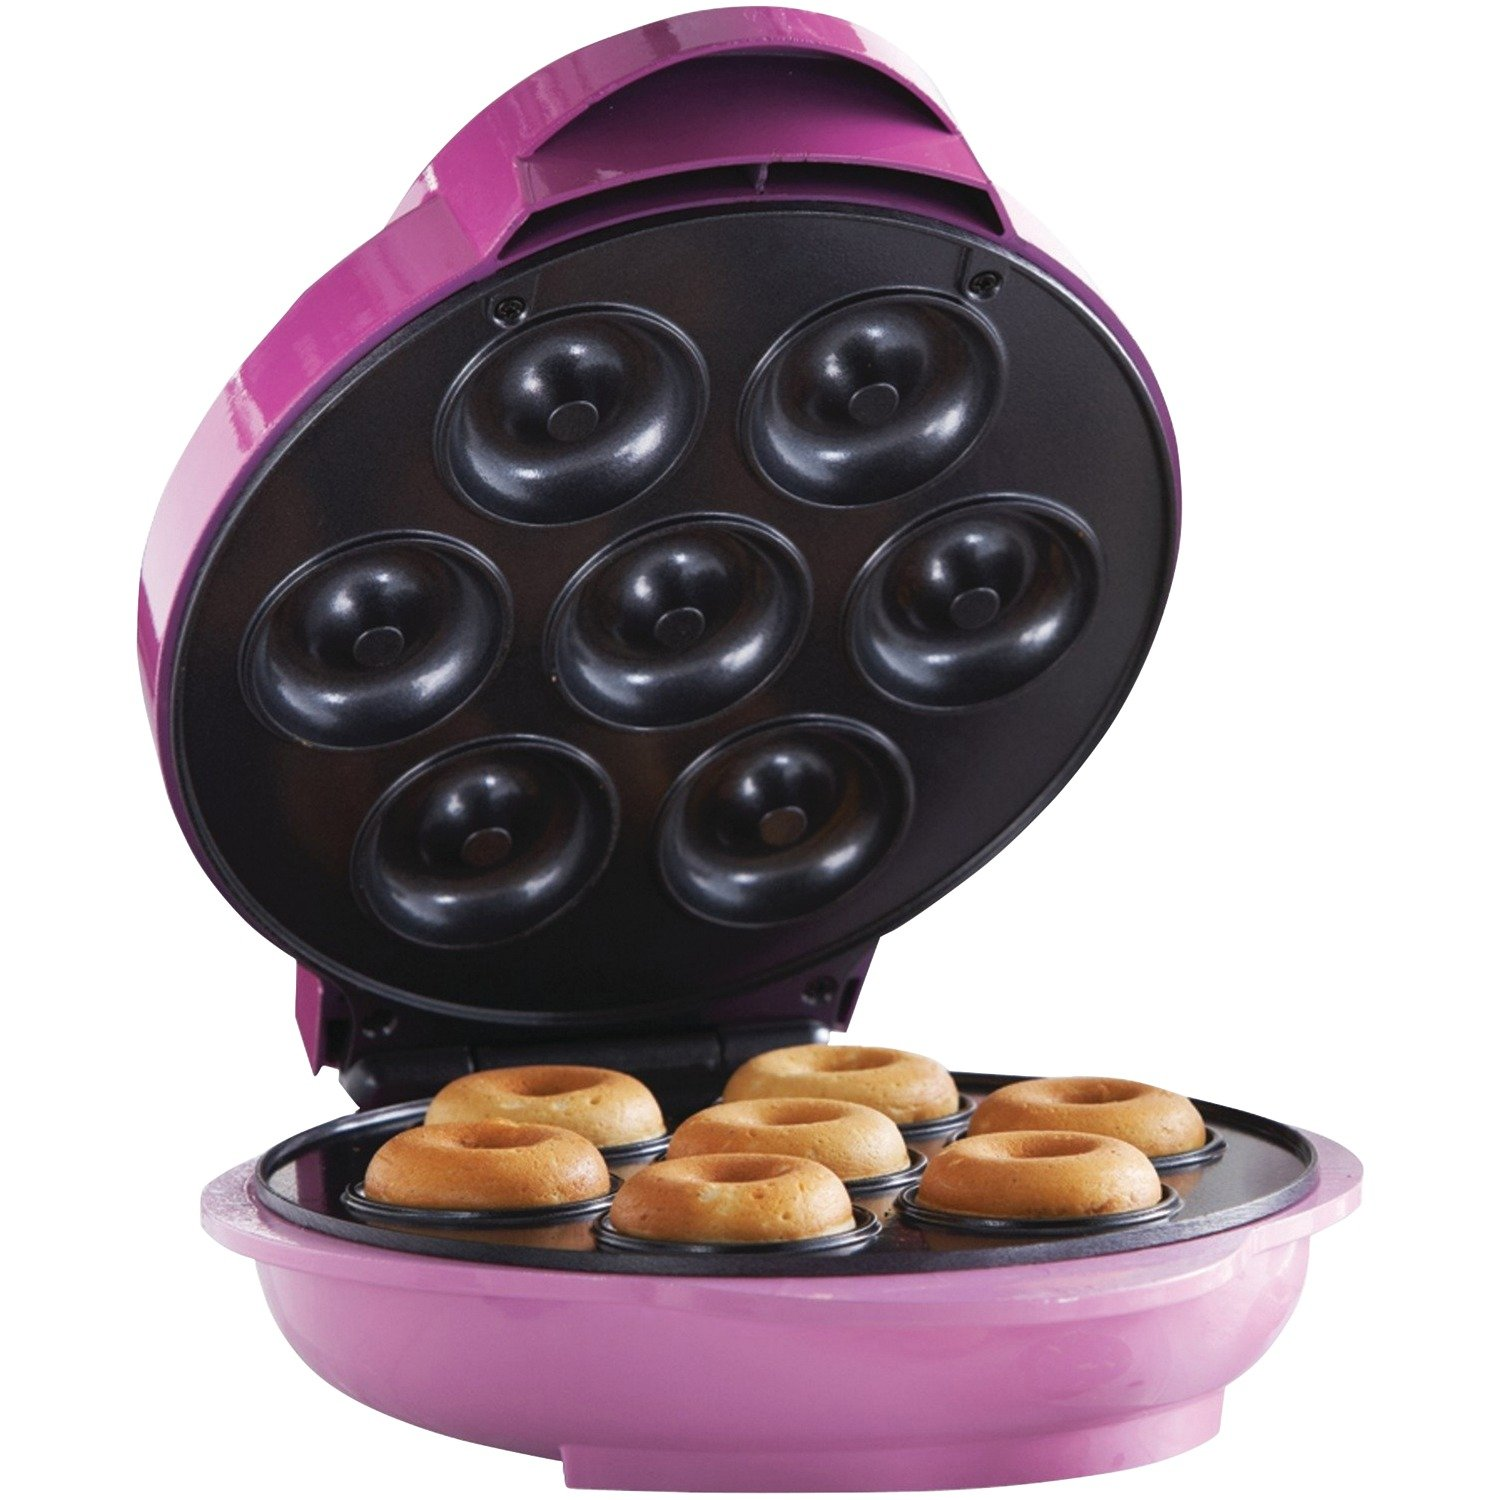 Brentwood TS-250 Non-Stick Mini Donut Maker Machine, Pink by Brentwood (Image #2)